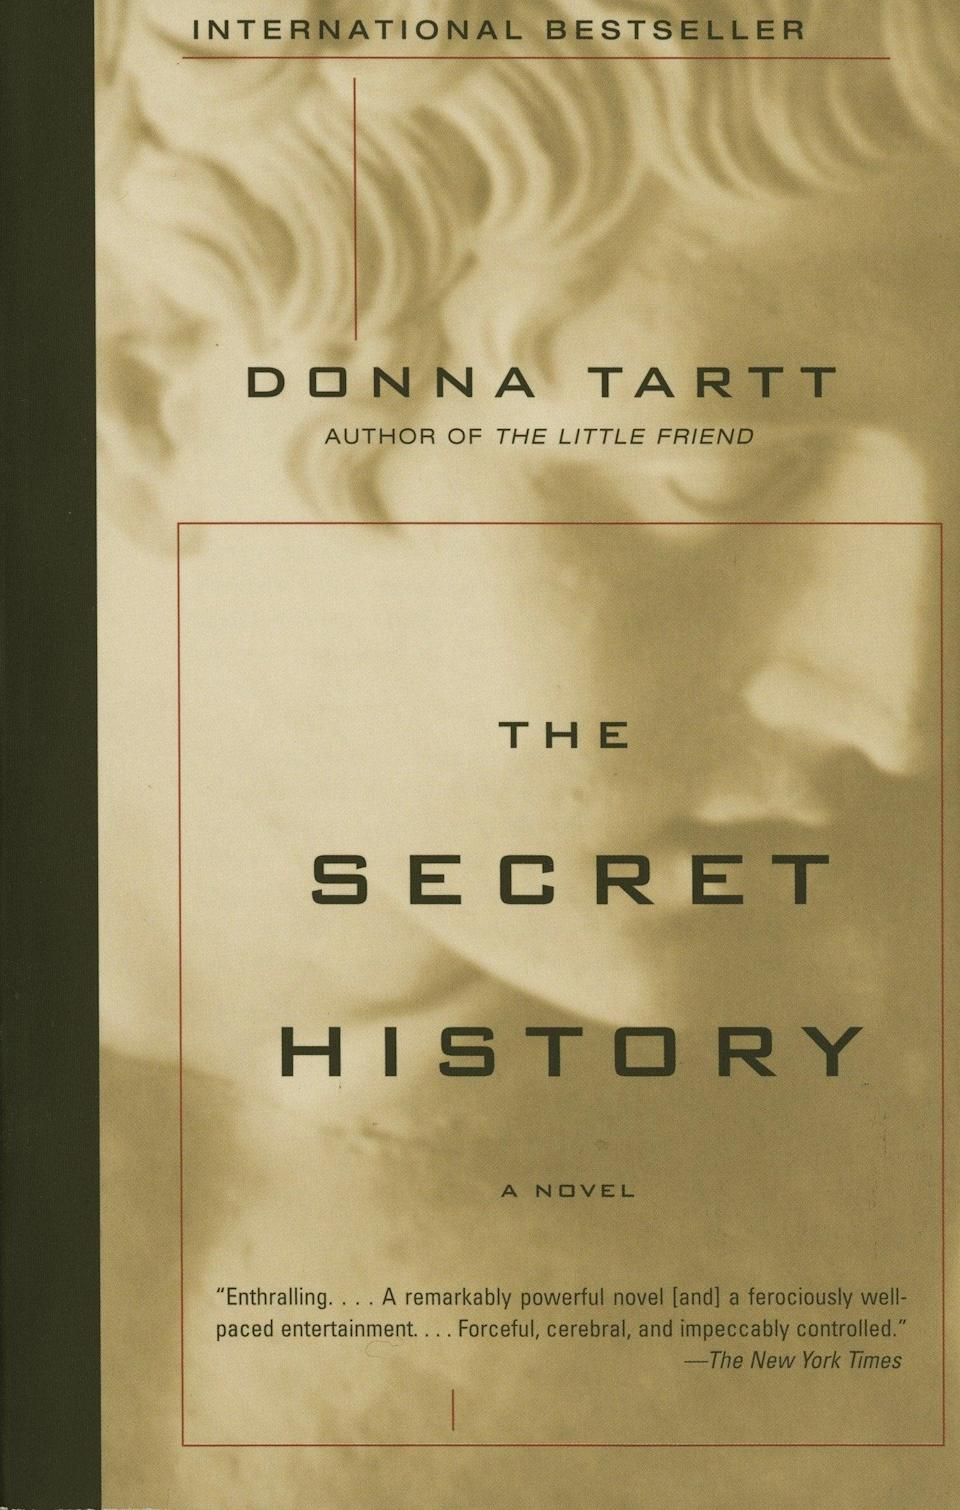 <p>Donna Tartt's <span><b>The Secret History</b></span> illustrates the story of misfit students attending an elite New England college who challenge the boundaries of their everyday norms alongside the influence of their professor. This ever-evolving dark read is perfect for the chilling atmosphere of fall!</p>